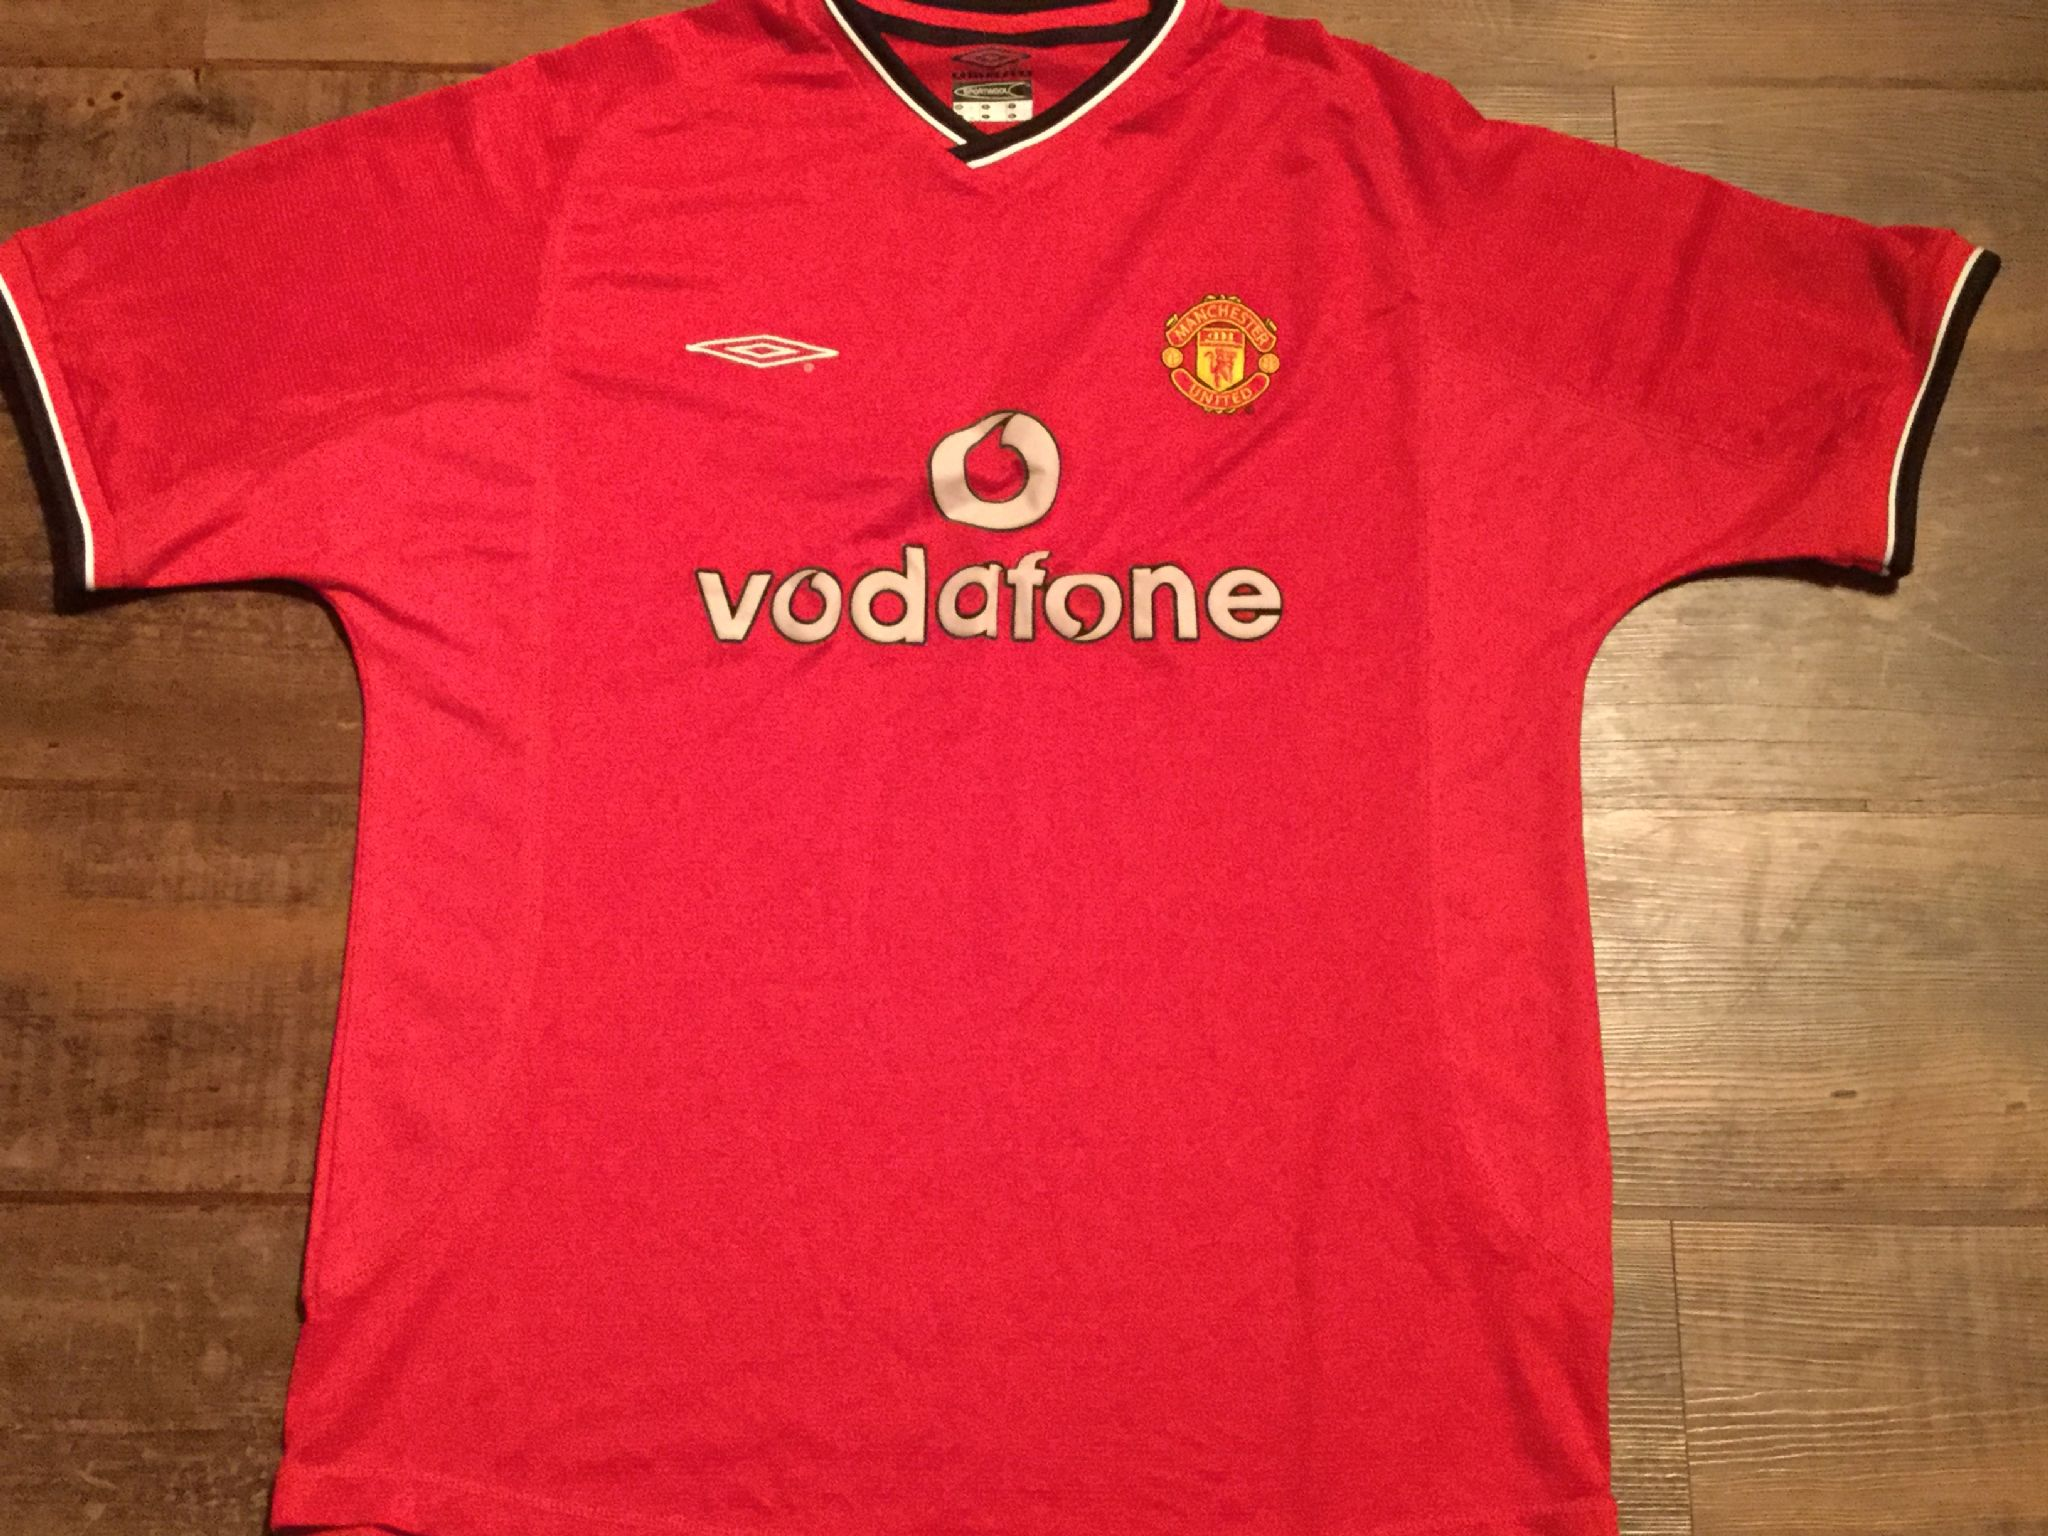 2000 2002 Manchester United Home Football Shirt Adults Large 33a30933b